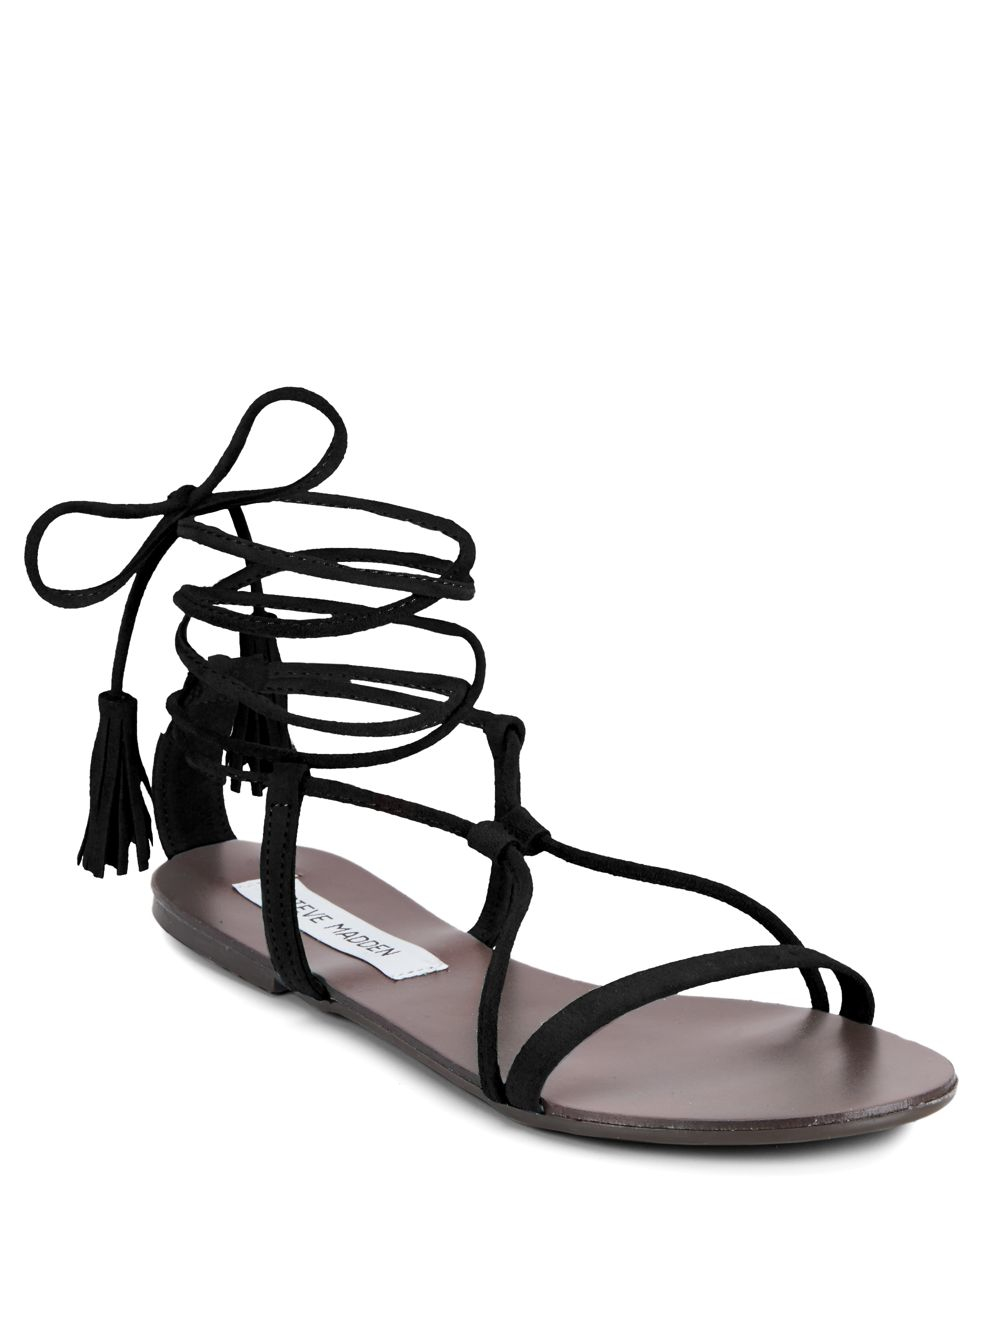 0520c8a0284 Lyst - Steve Madden Suede Open-toe Lace-up Sandals in Black